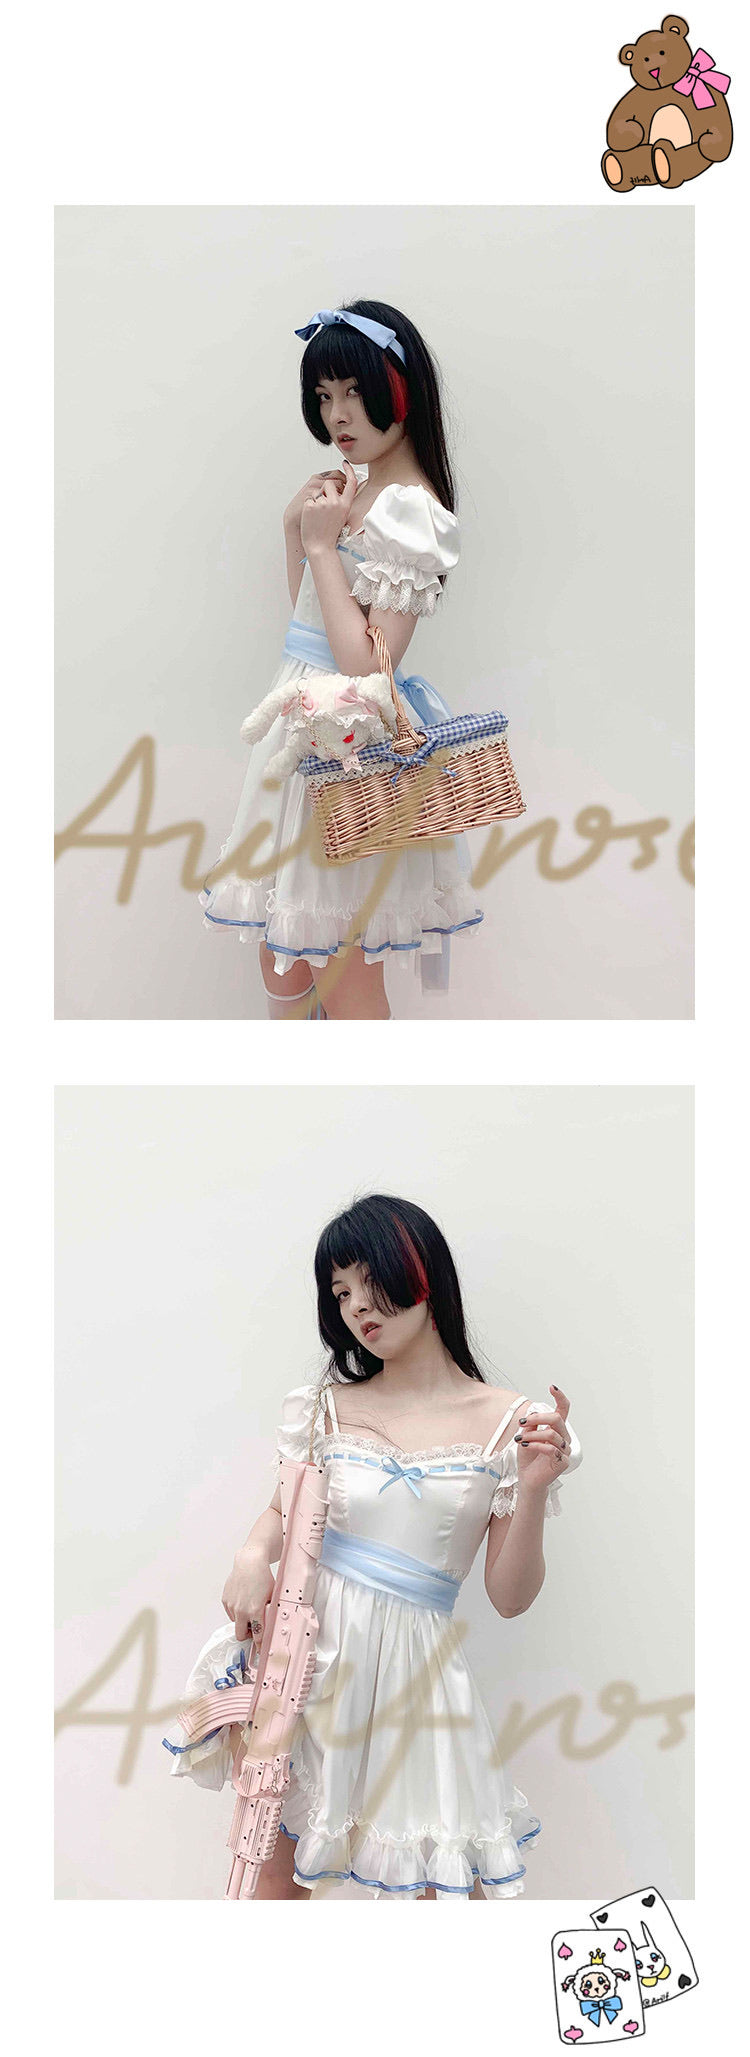 [Premium Selected] Snow White in wonderland - Peiliee Shop